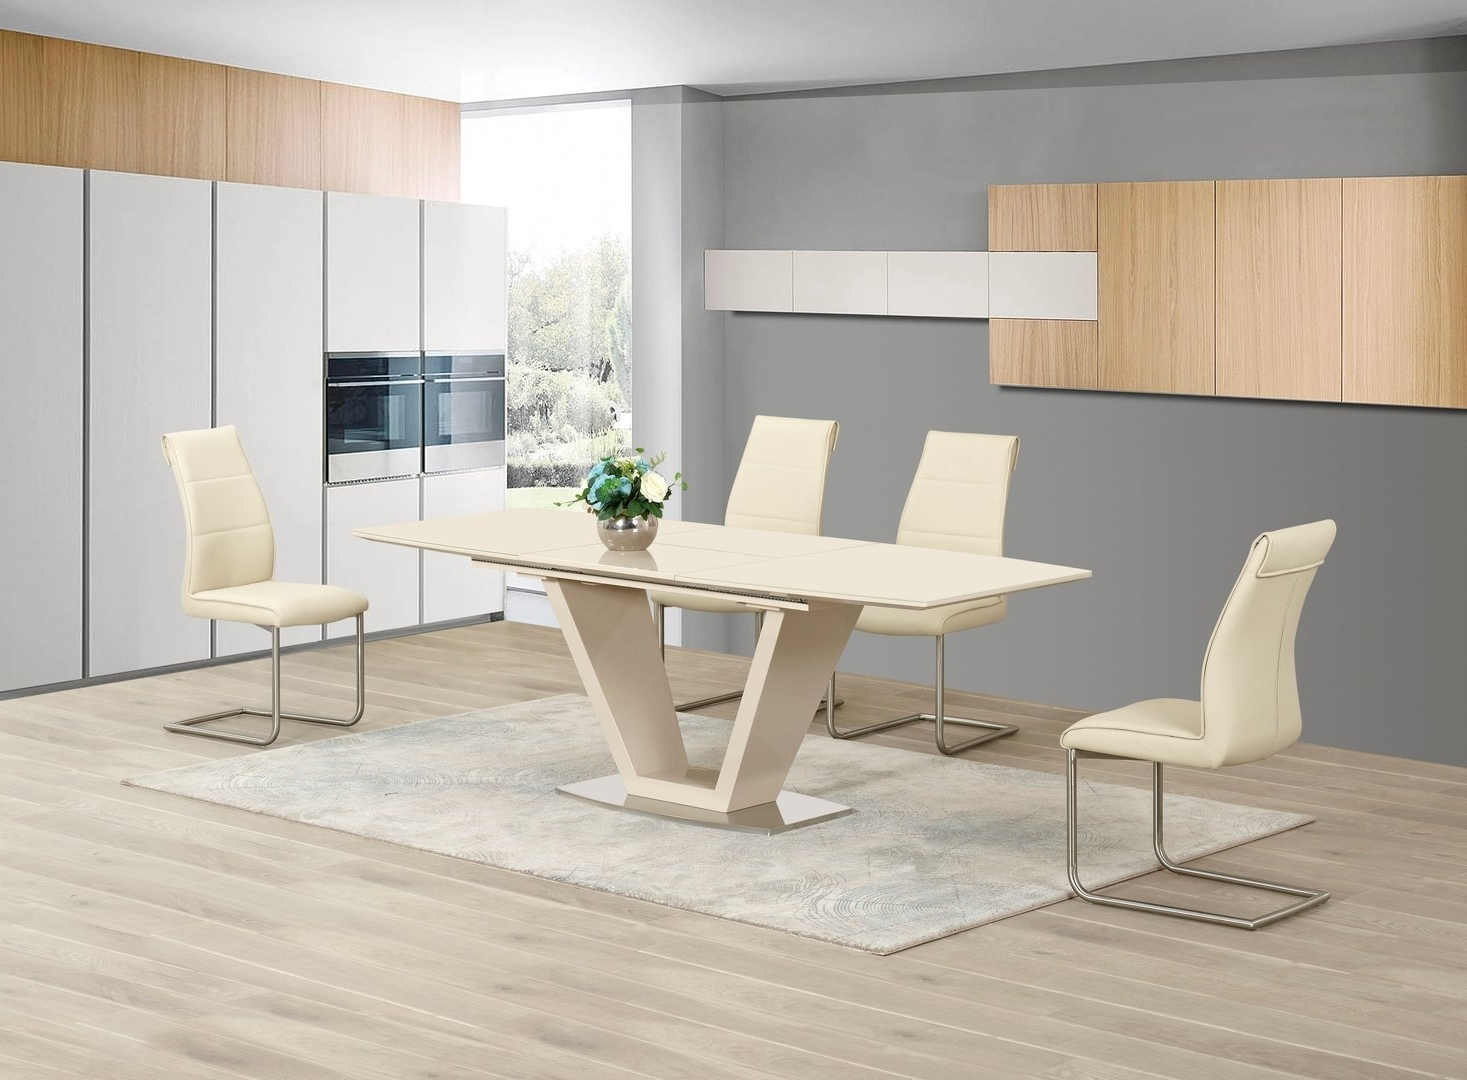 Extending Cream Glass High Gloss Dining Table And 8 Cream Chairs In Trendy Extending Dining Tables Sets (View 11 of 25)